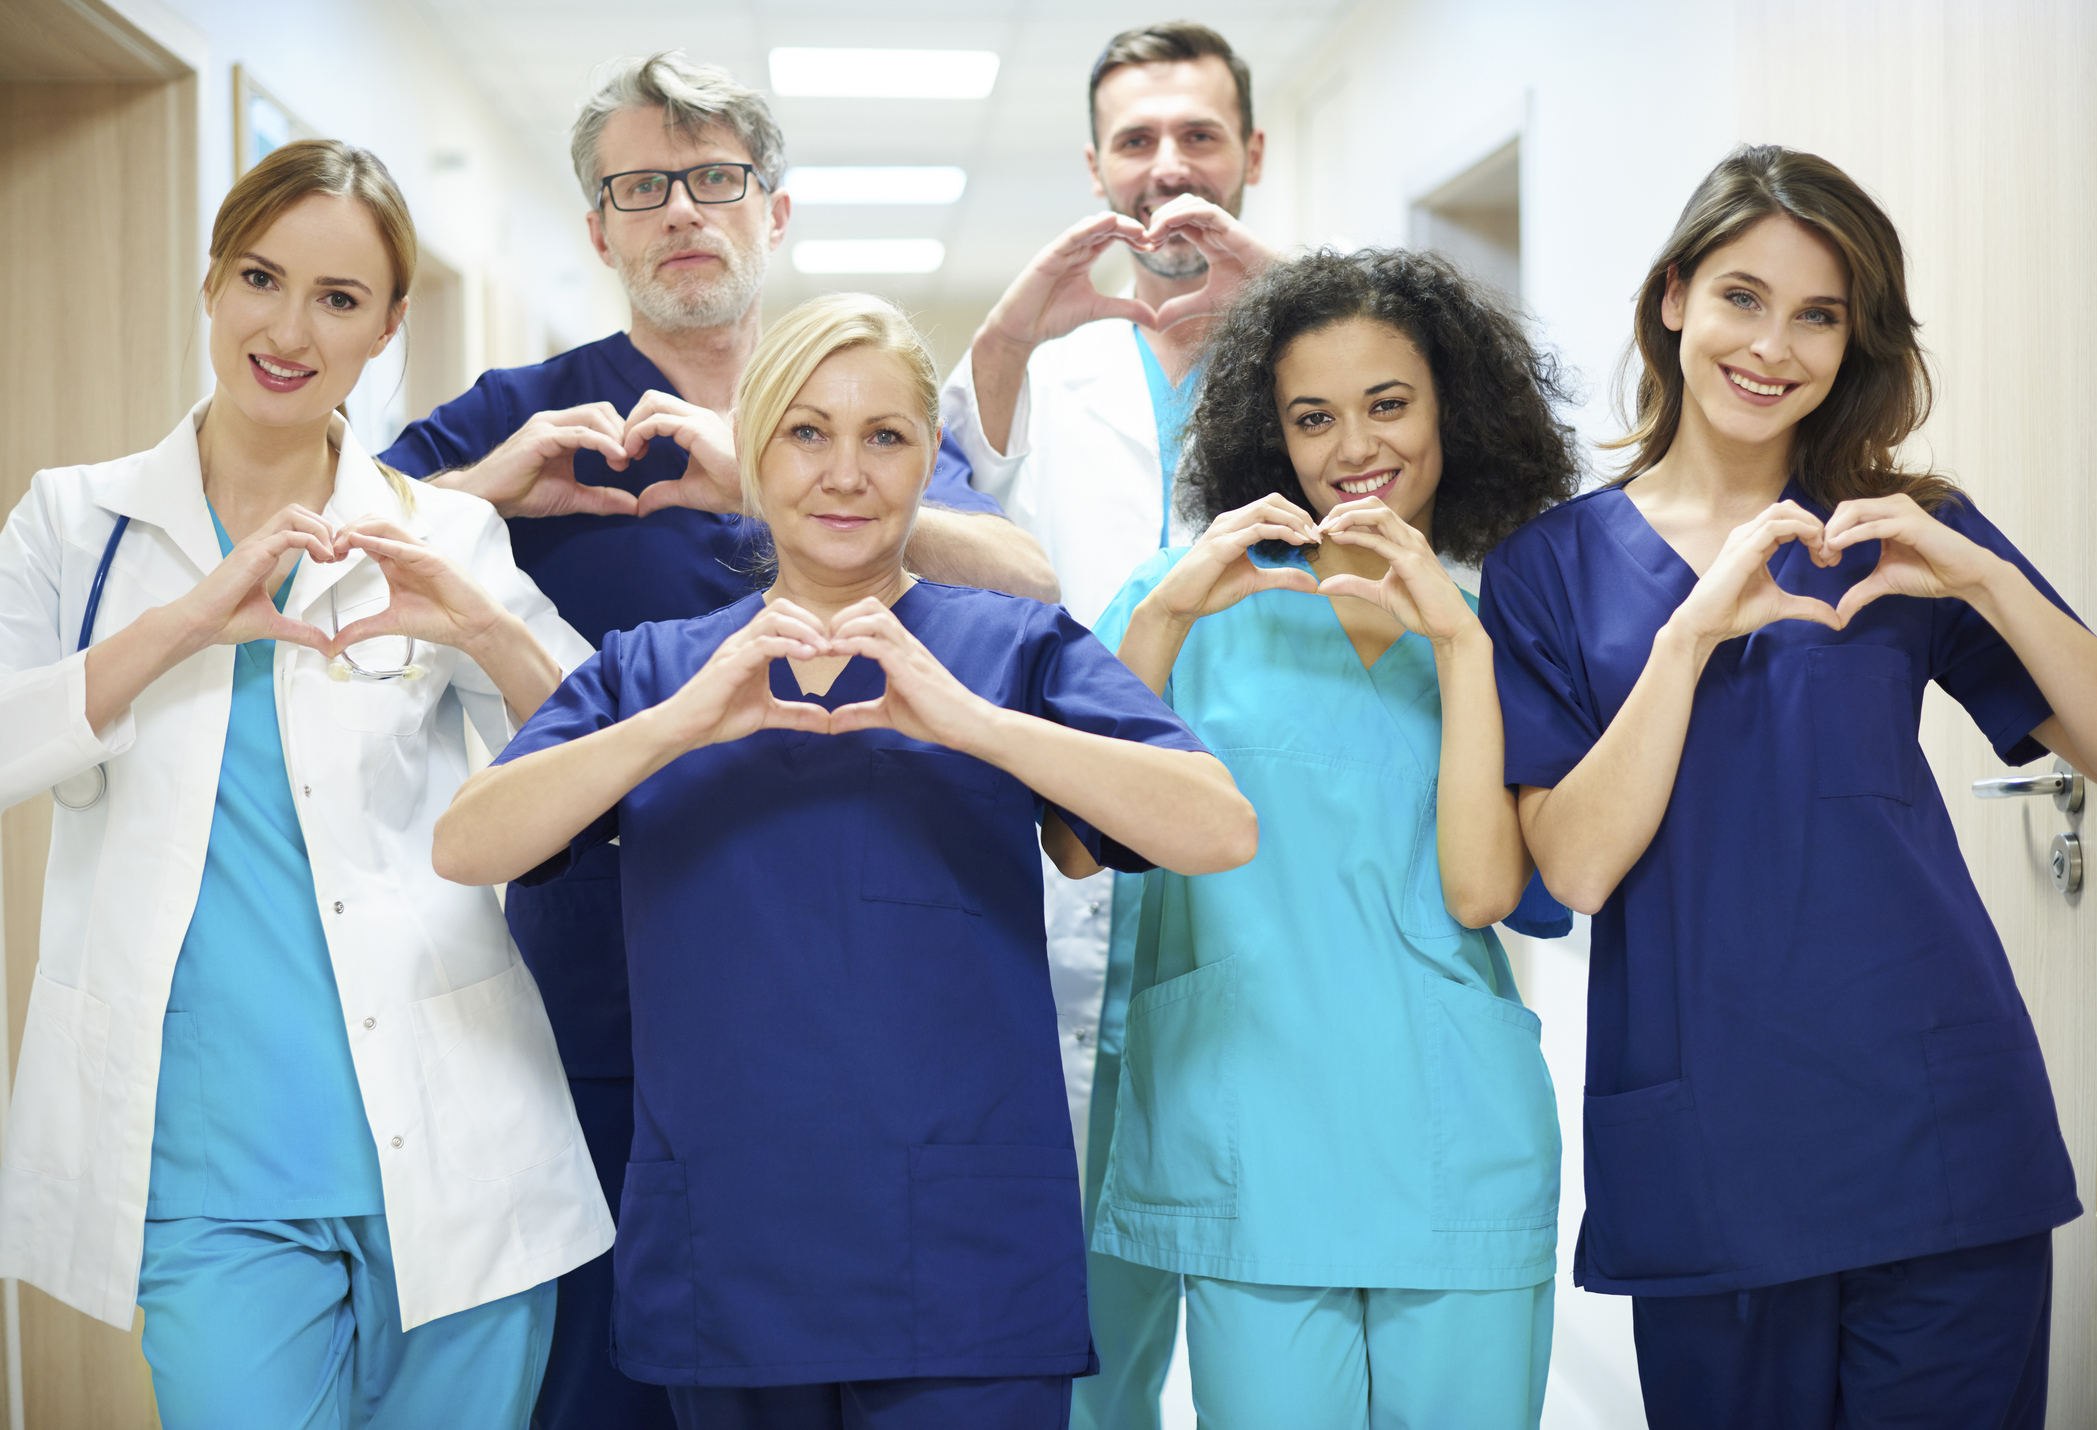 Group of doctors with heart symbol